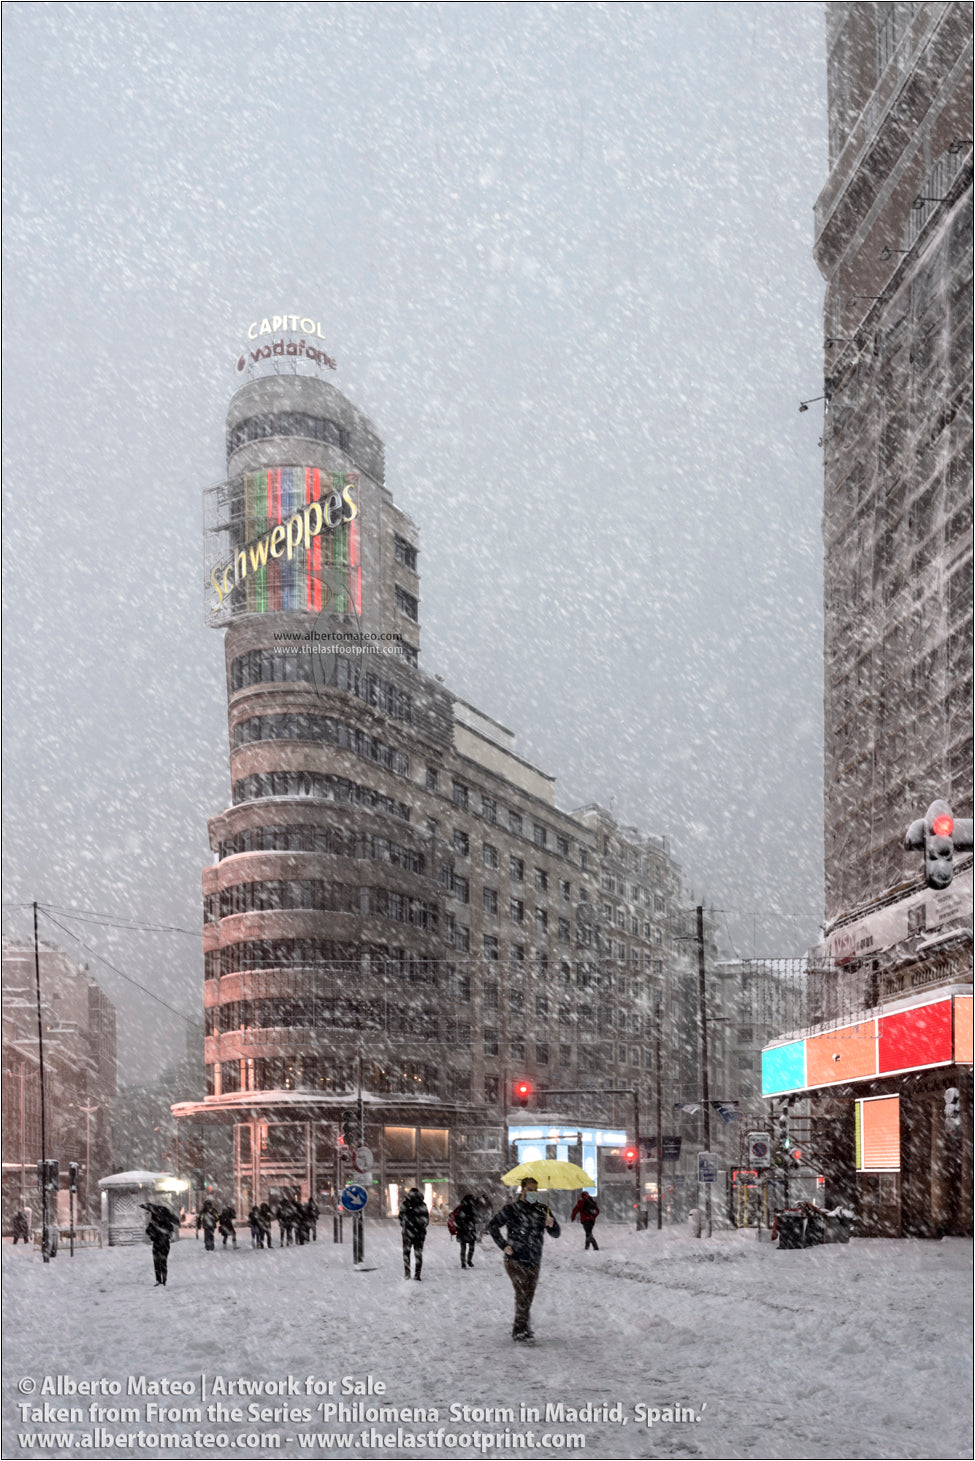 Edificio Capitol in Gran Via during Filomena Winter Snow Storm, Madrid, Spain.